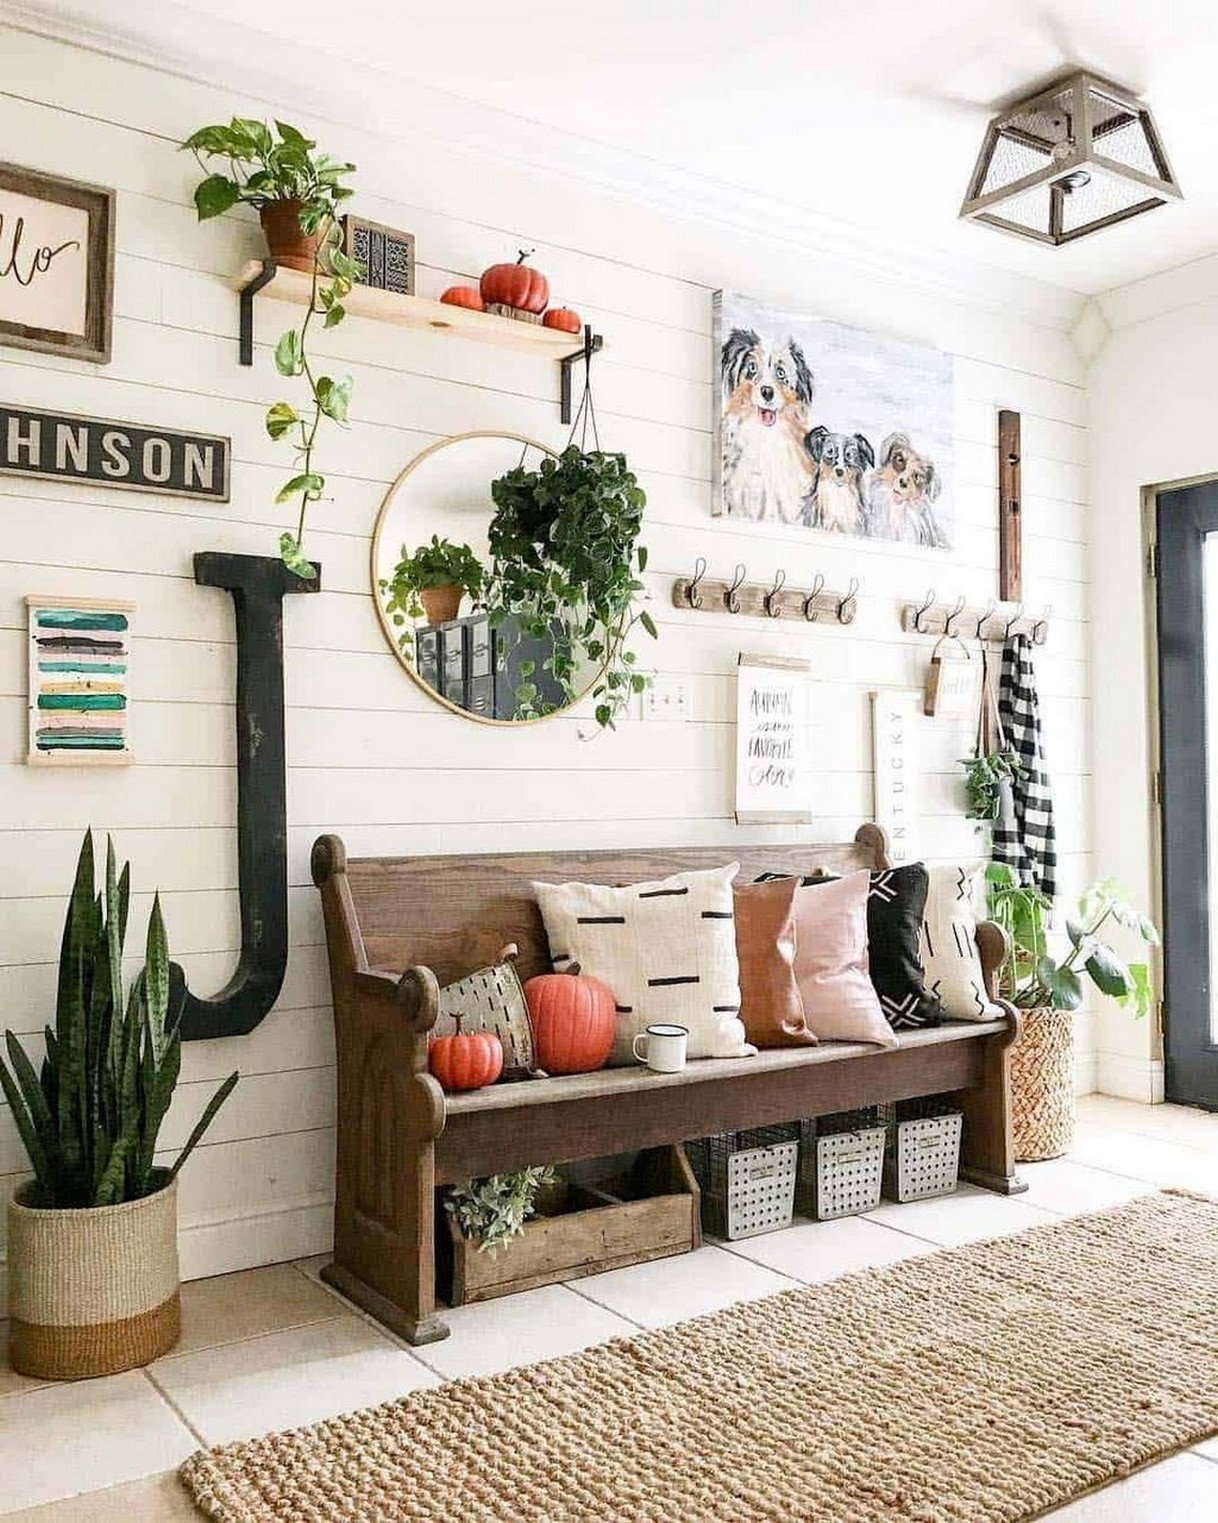 67 Rustic Home Decorating Ideas In 2020 Home Decor 41